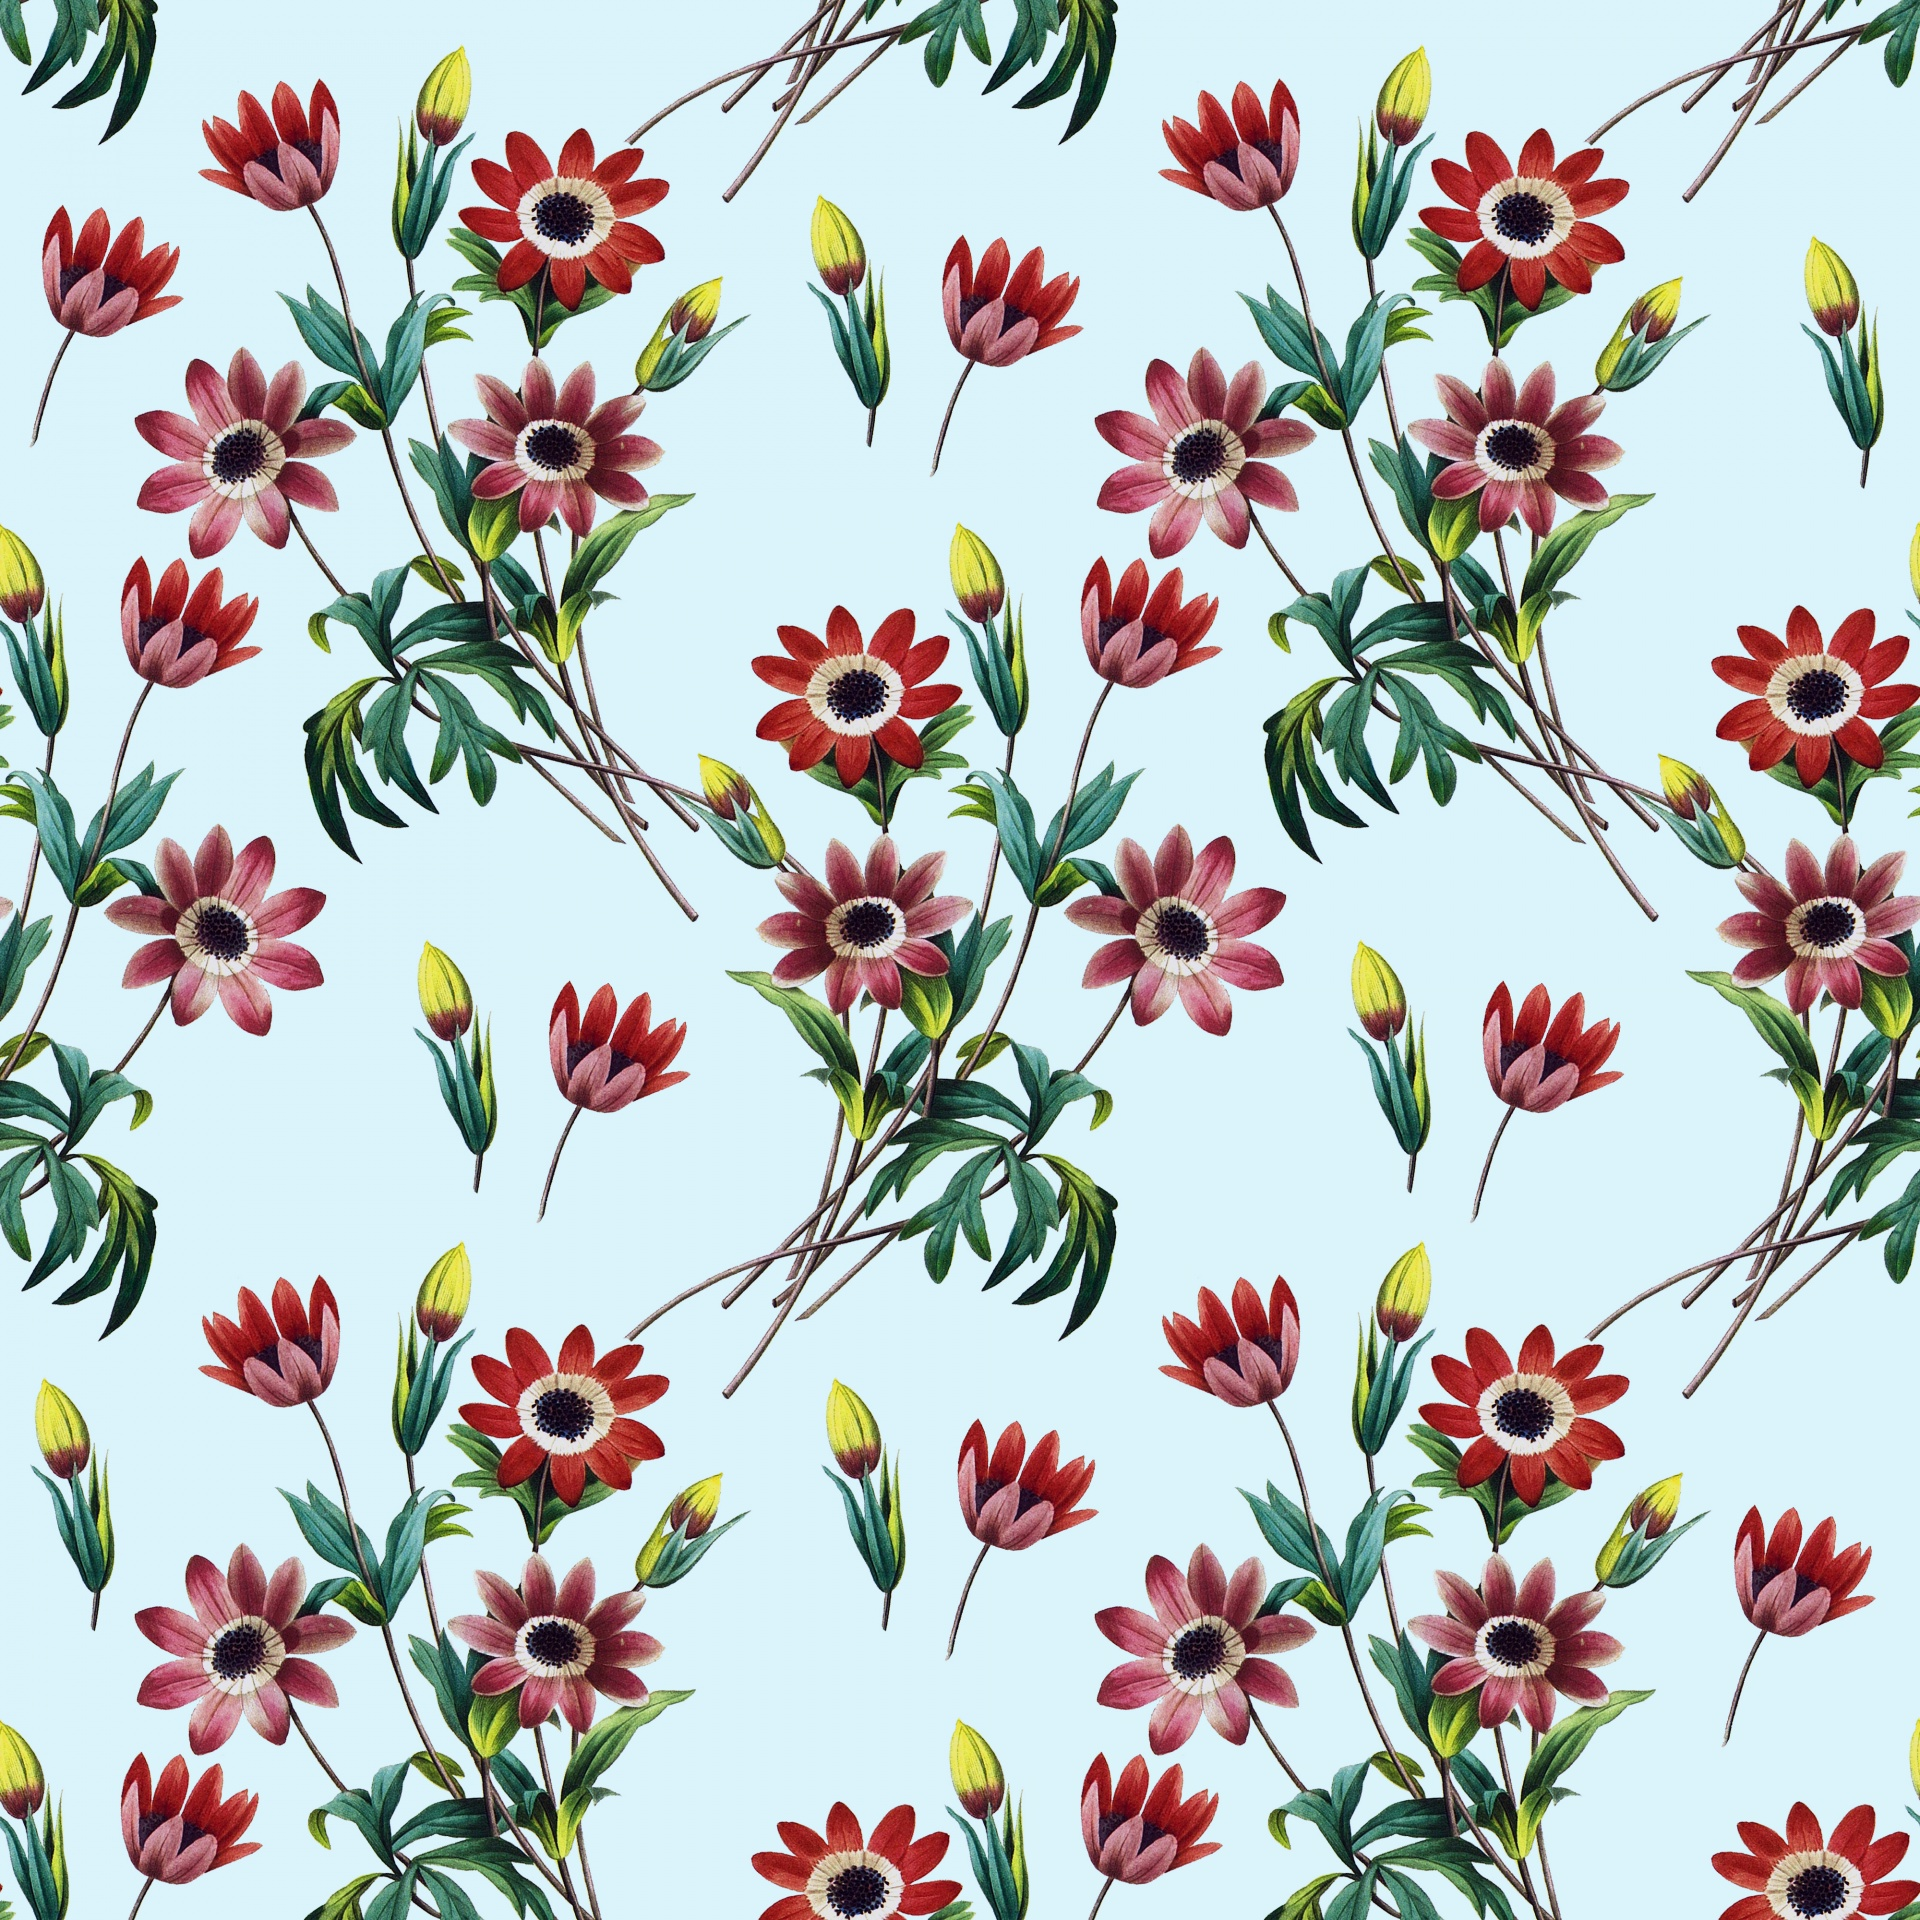 Floral Flowers Vintage Painting Background Free Image From